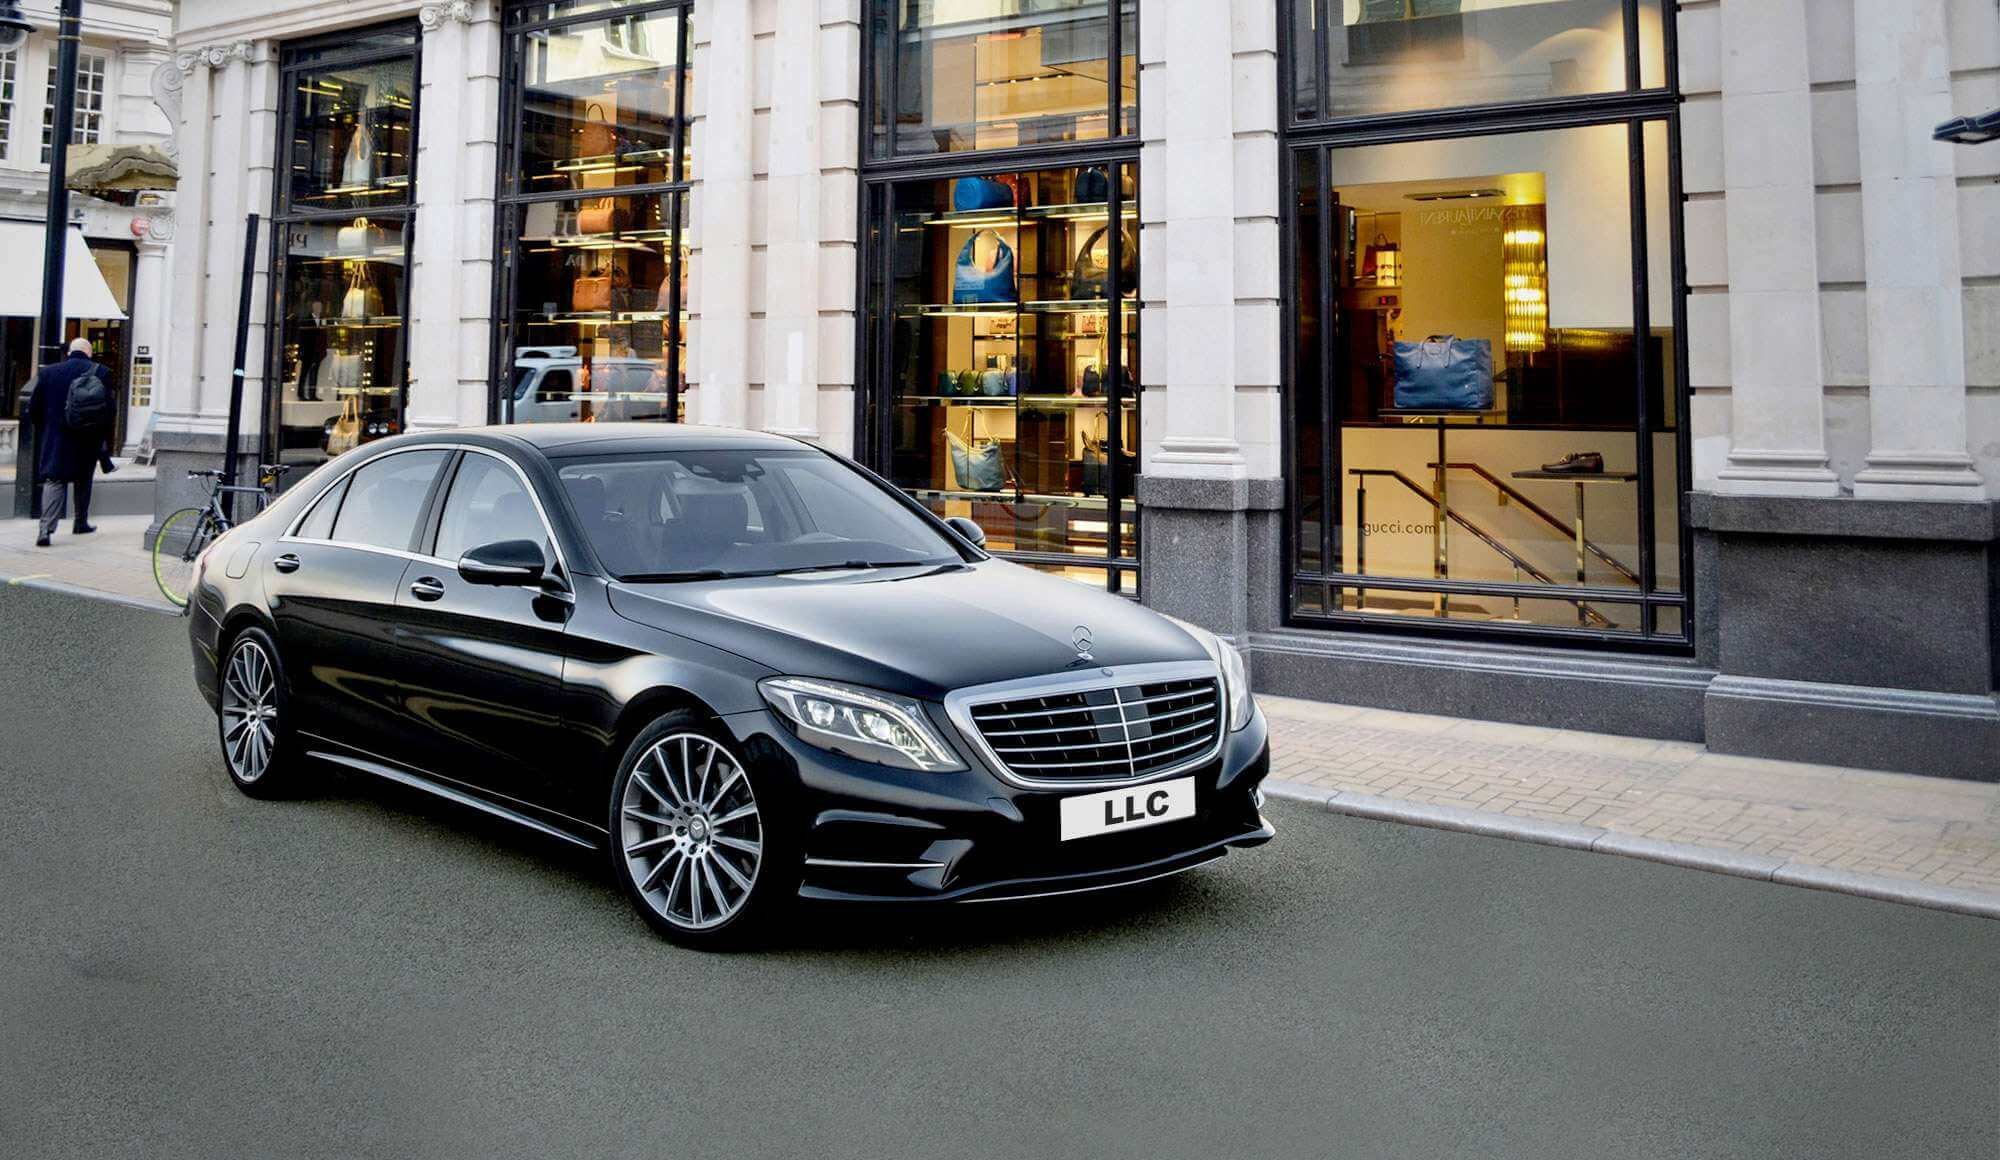 Mercedes S Class - Chauffeur Vehicle